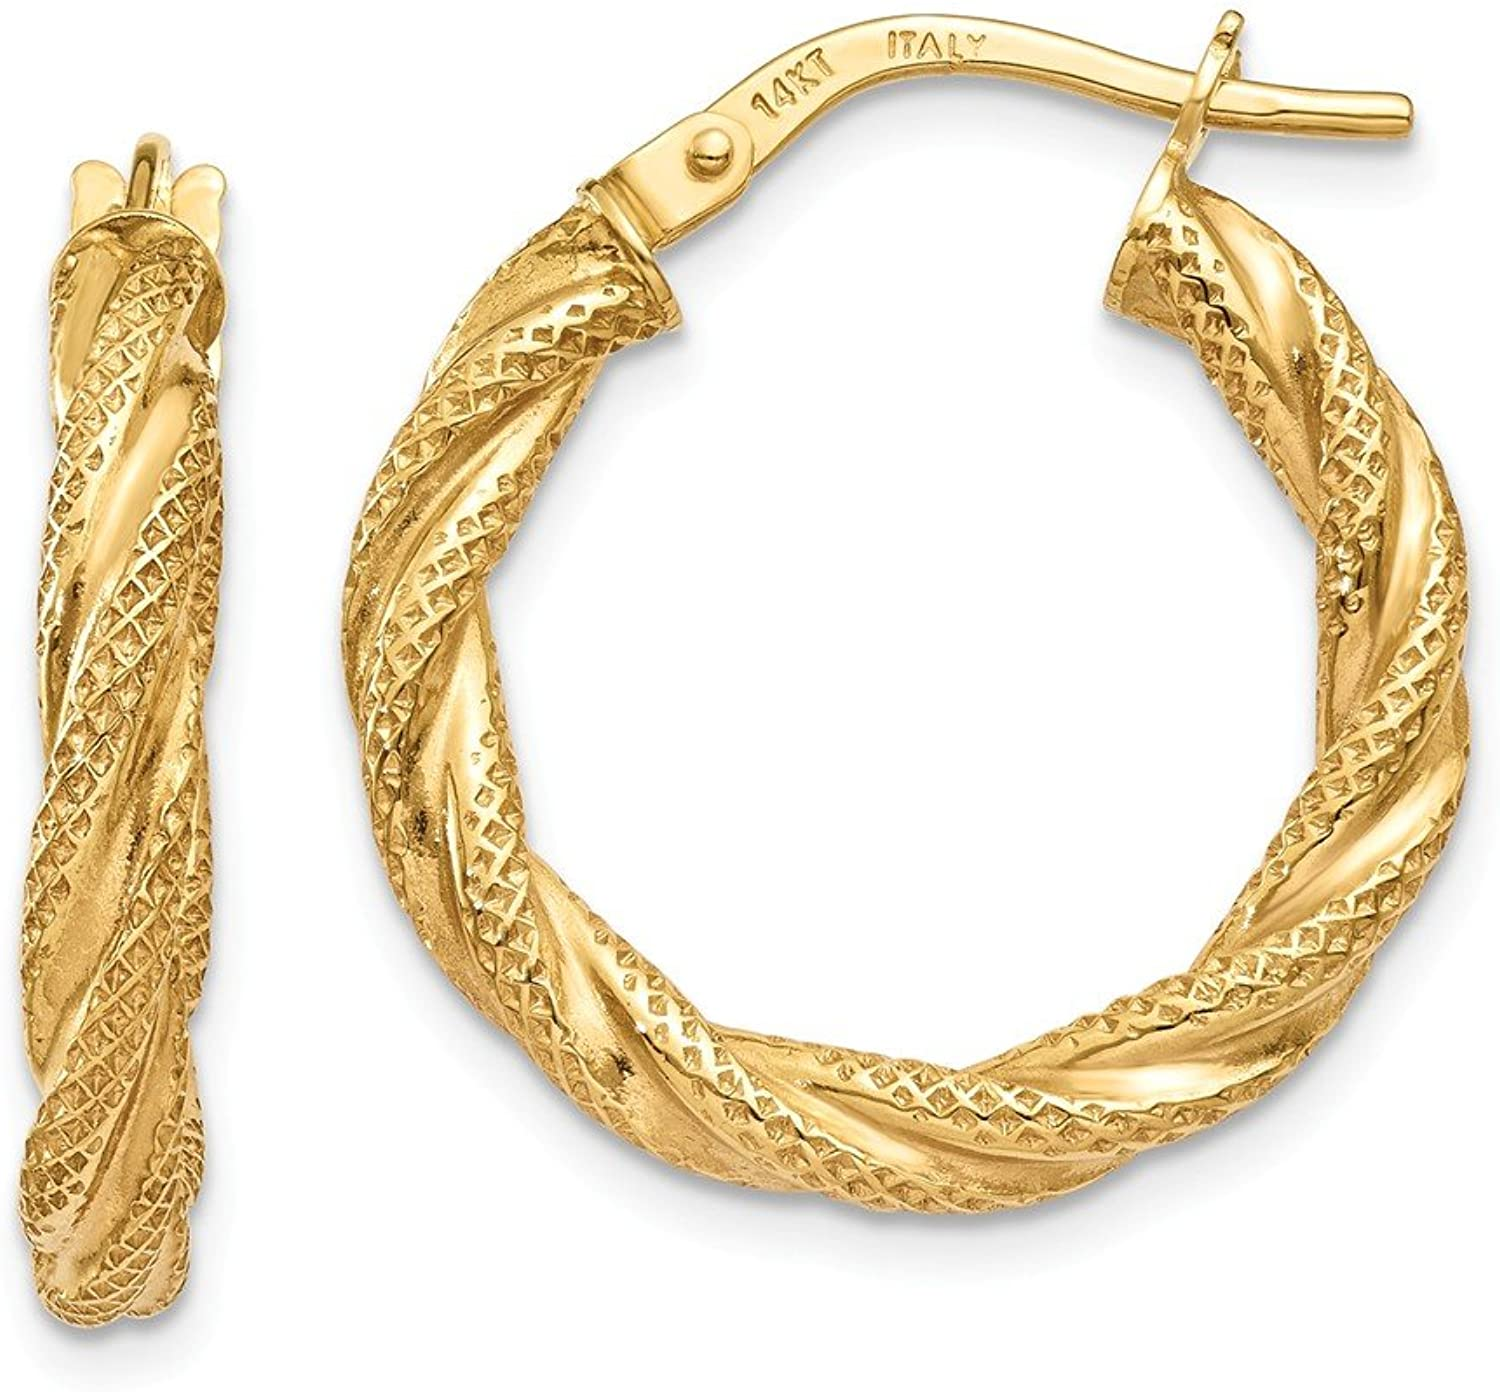 Beautiful Yellow gold 14K Yellowgold 14K Twisted Textured Hoop Earrings